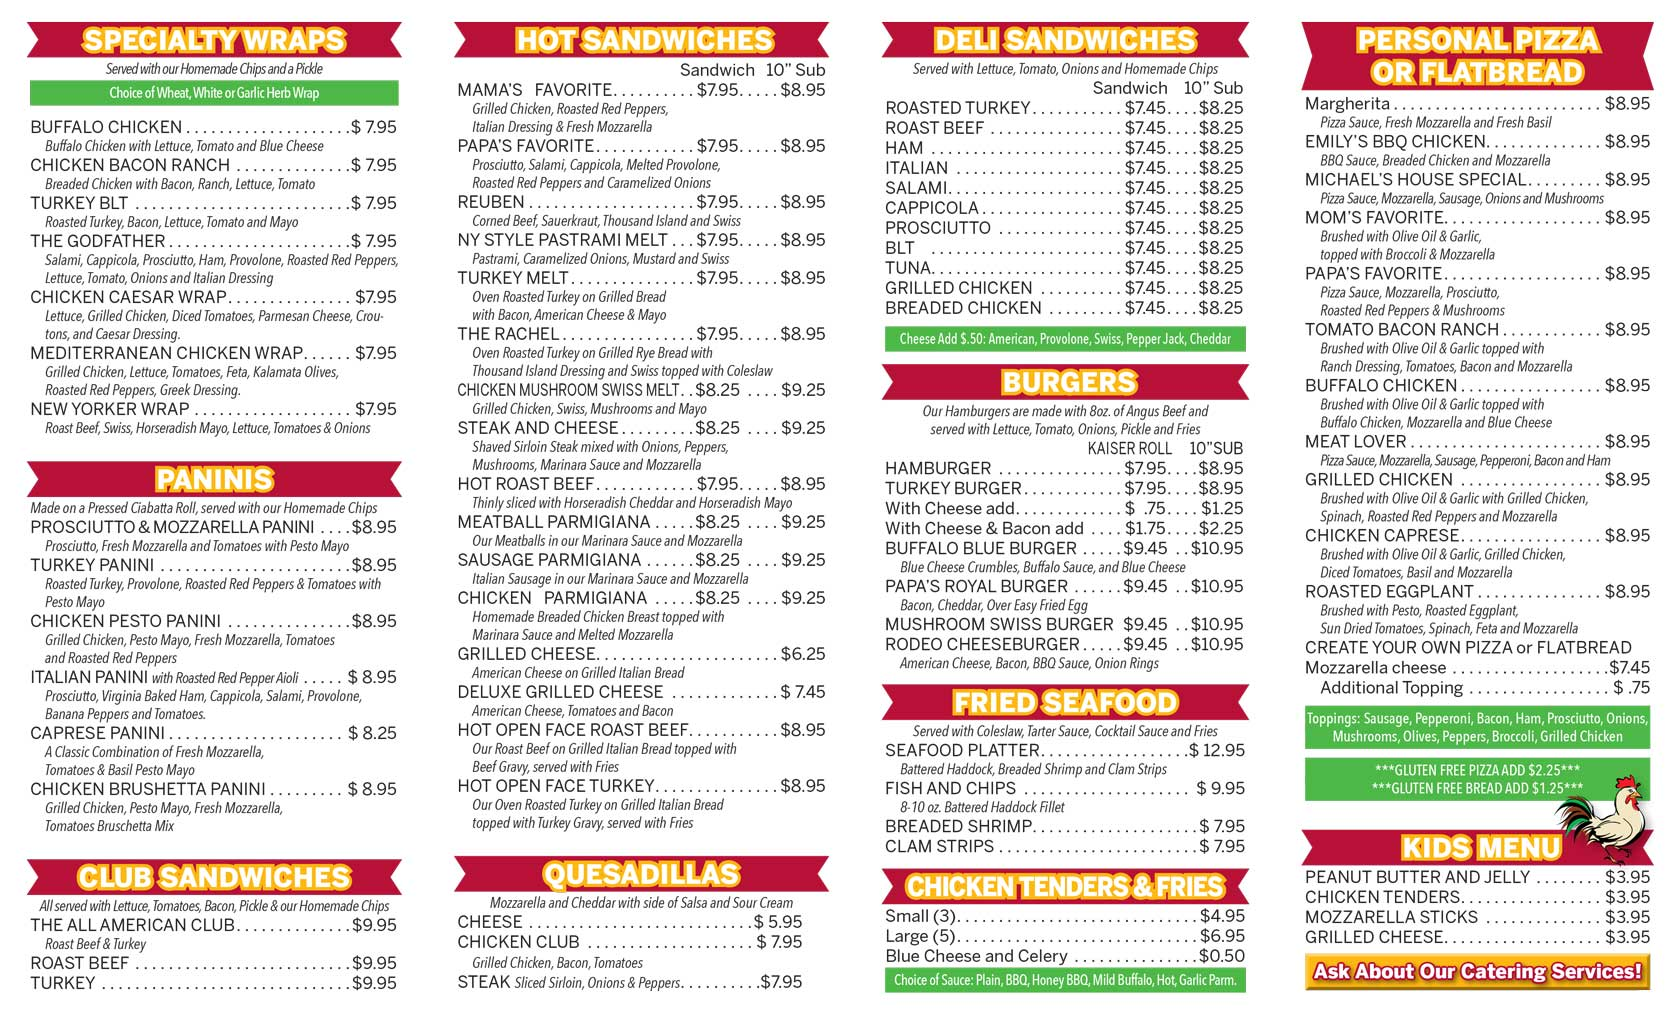 Image of take out menu designed for Mom & Pop's Cafe in Ballston Spa, New York.